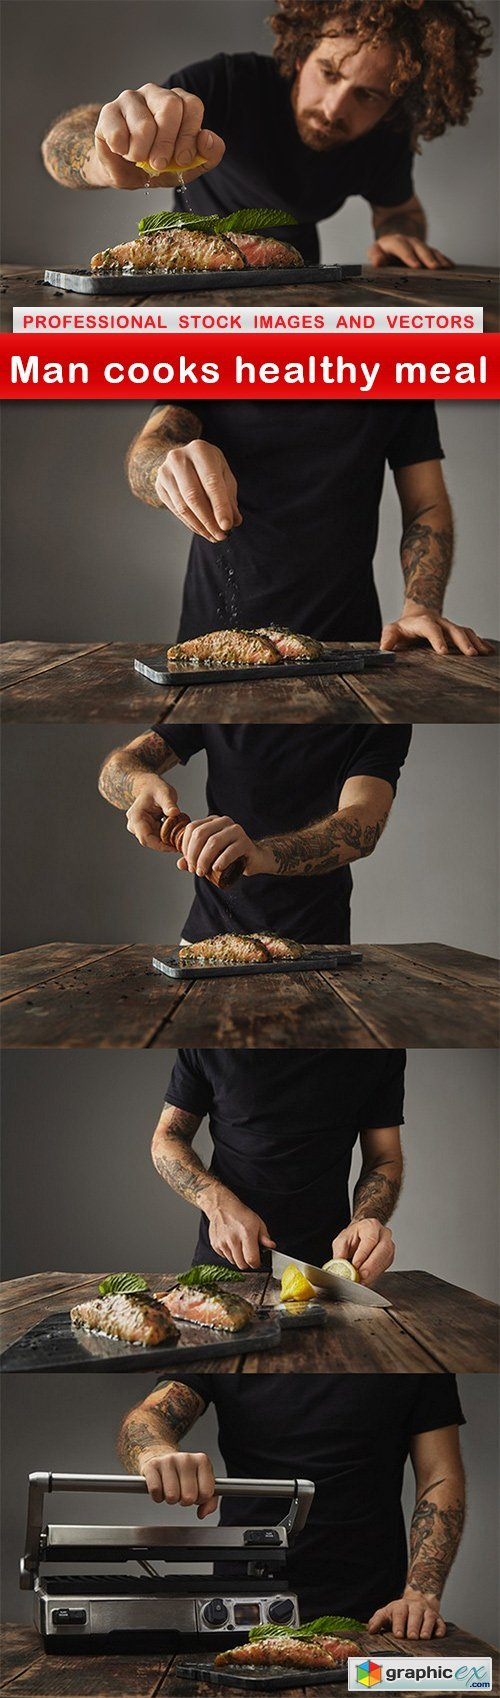 Man cooks healthy meal - 5 UHQ JPEG